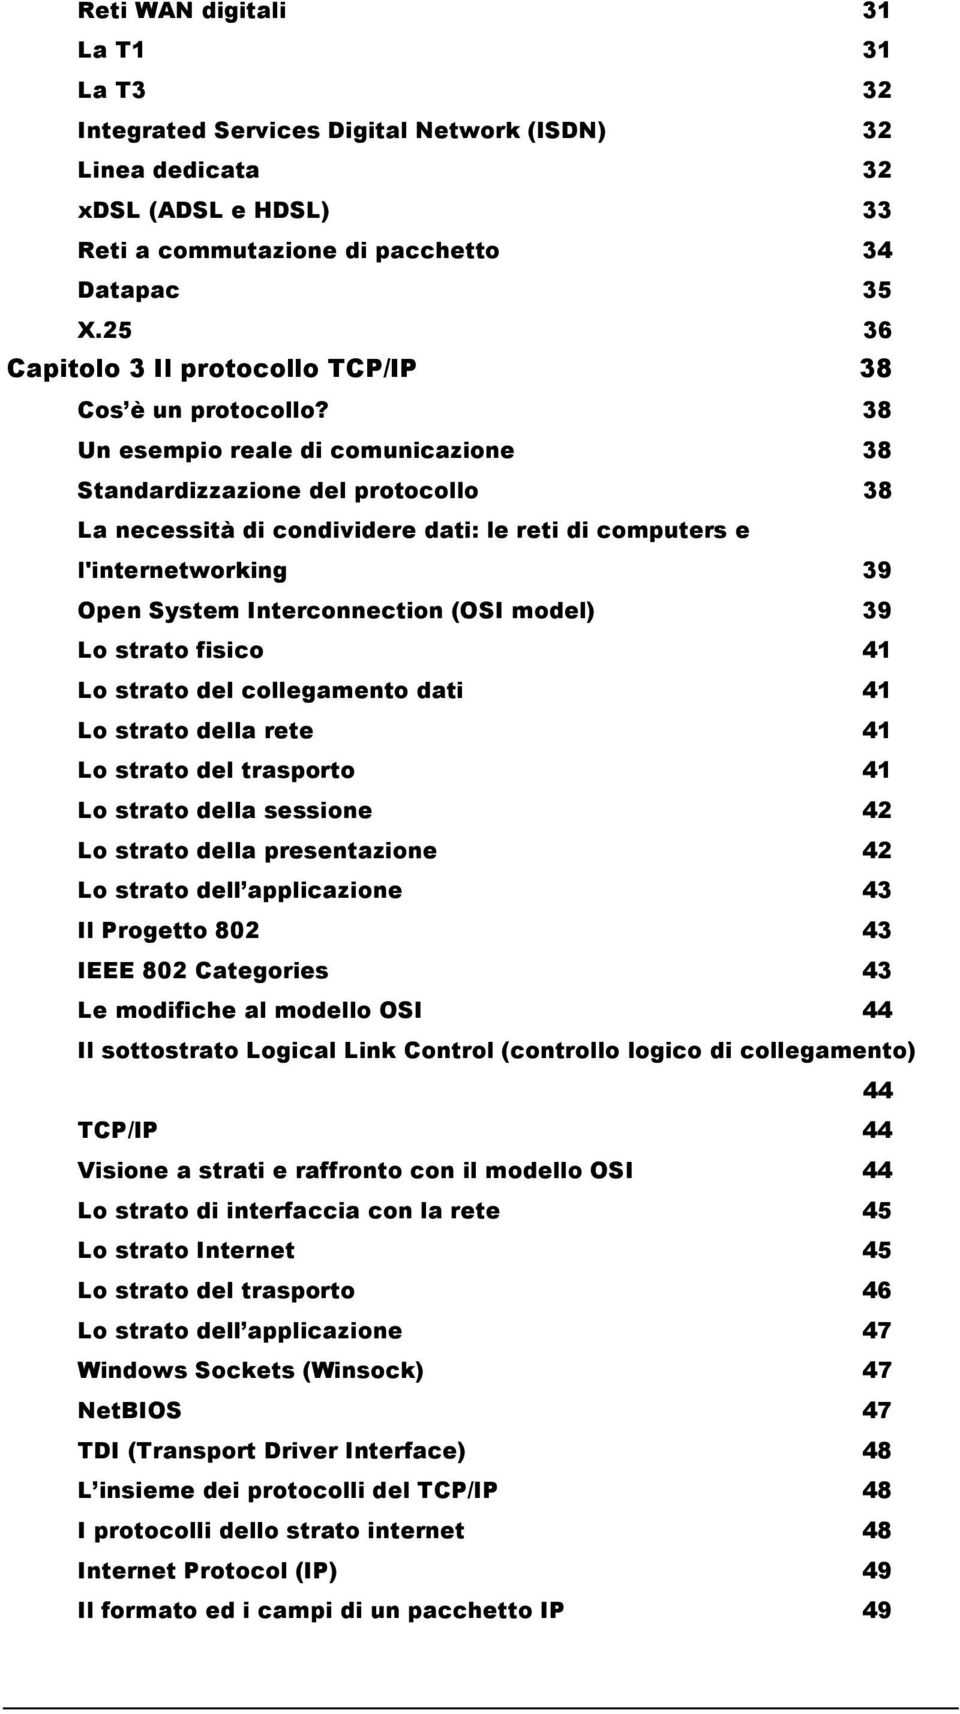 38 Un esempio reale di comunicazione 38 Standardizzazione del protocollo 38 La necessità di condividere dati: le reti di computers e l'internetworking 39 Open System Interconnection (OSI model) 39 Lo